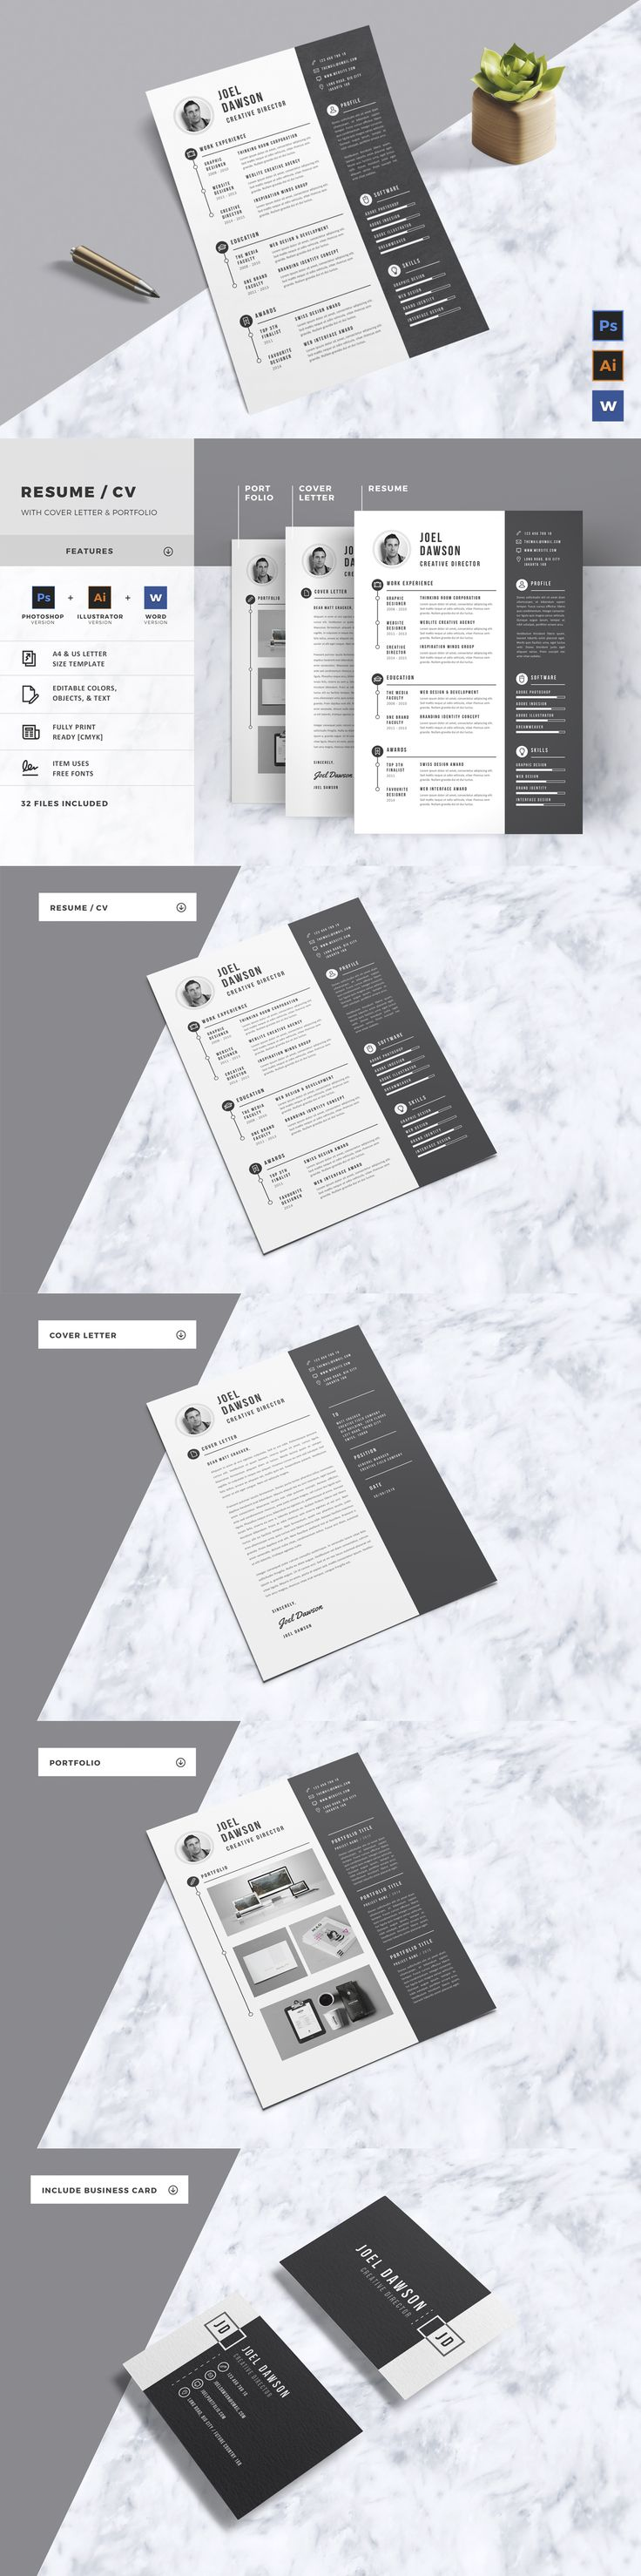 Resume by LeafLove on Envato Elements 49